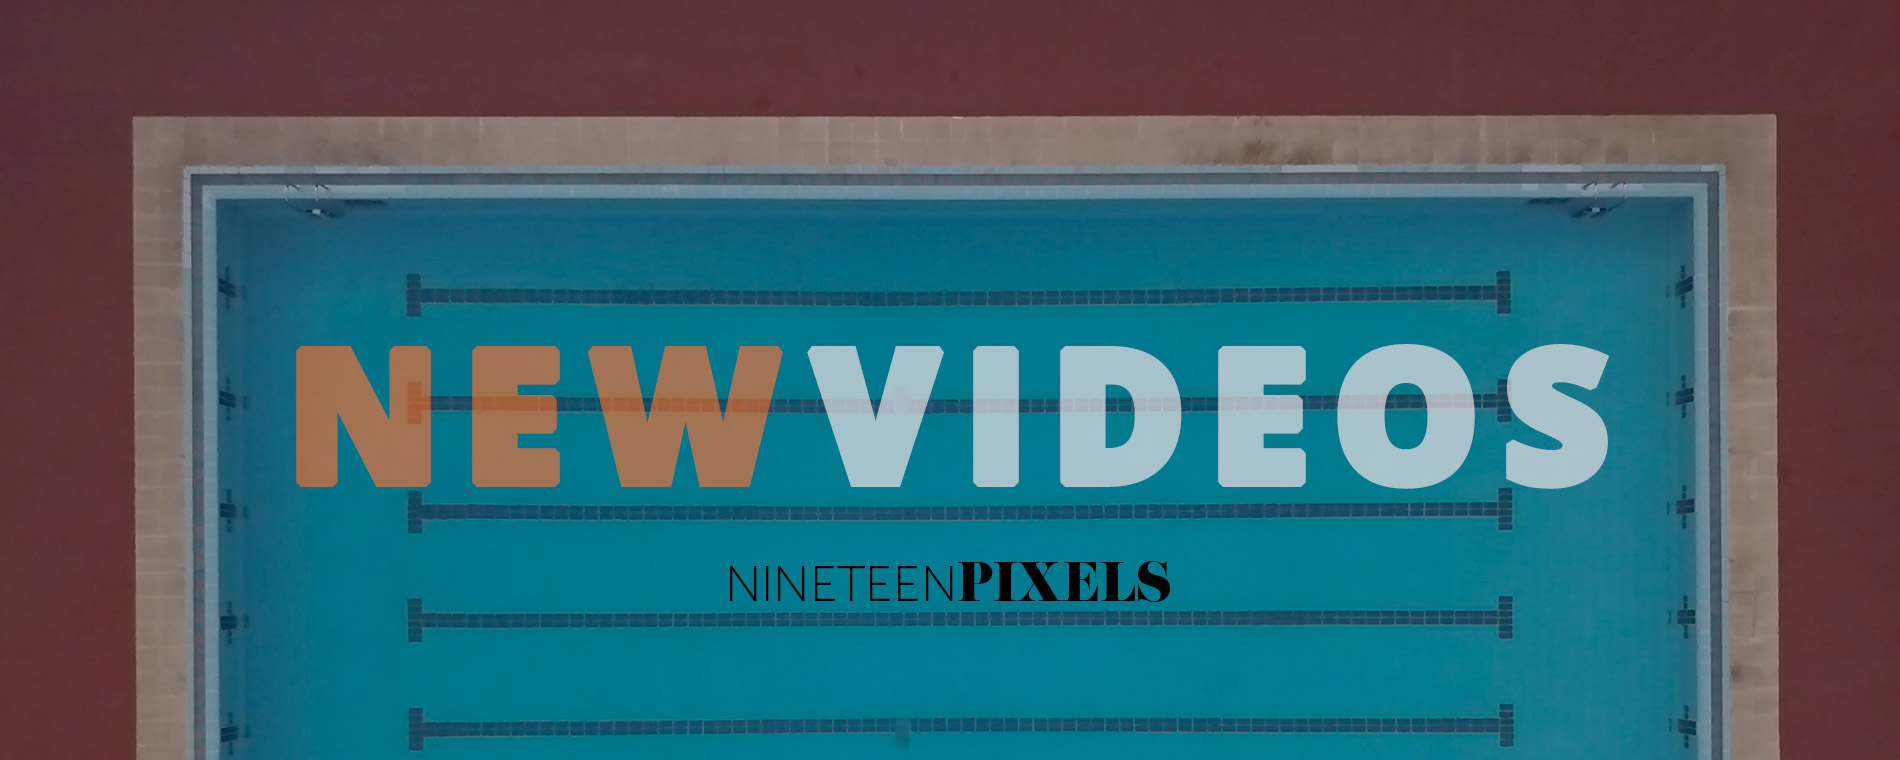 stock photos and video footage by nineteenpixels